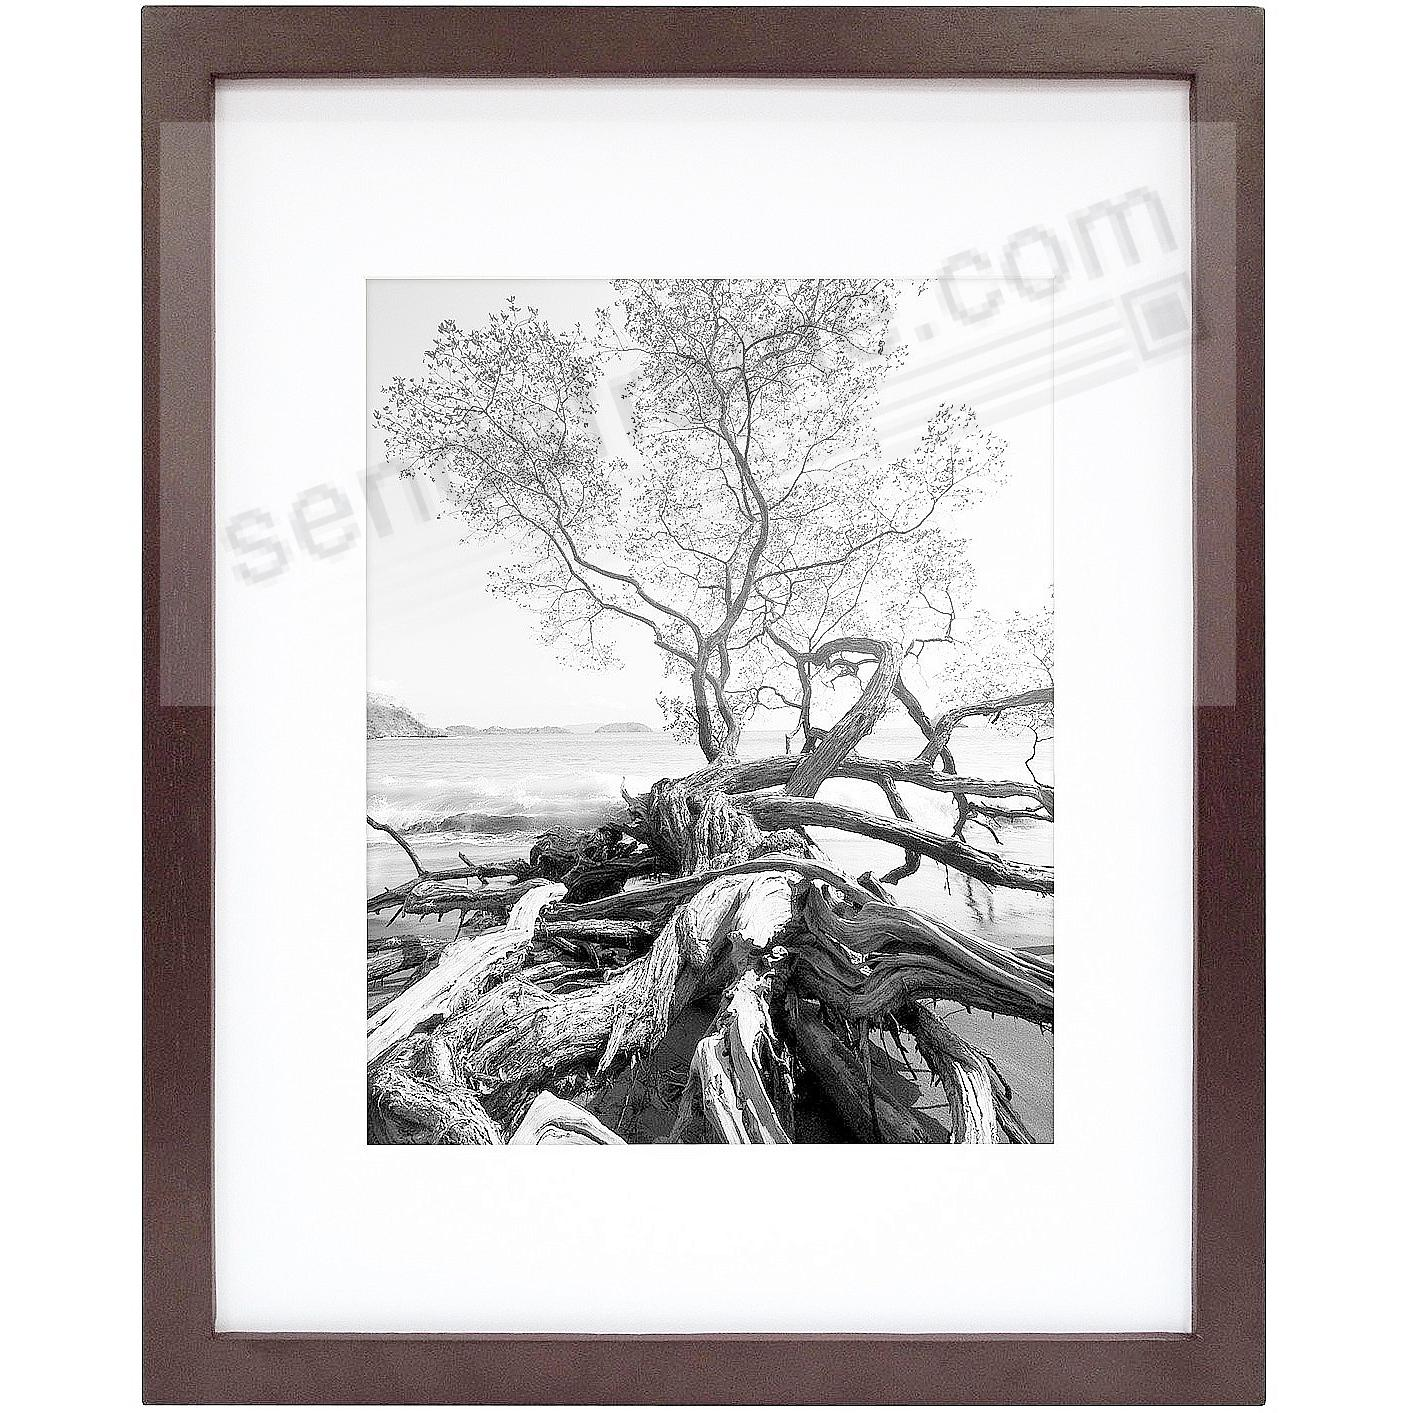 Art Shadow-Box 16x20/11x14 Walnut Wood frame by MCS®